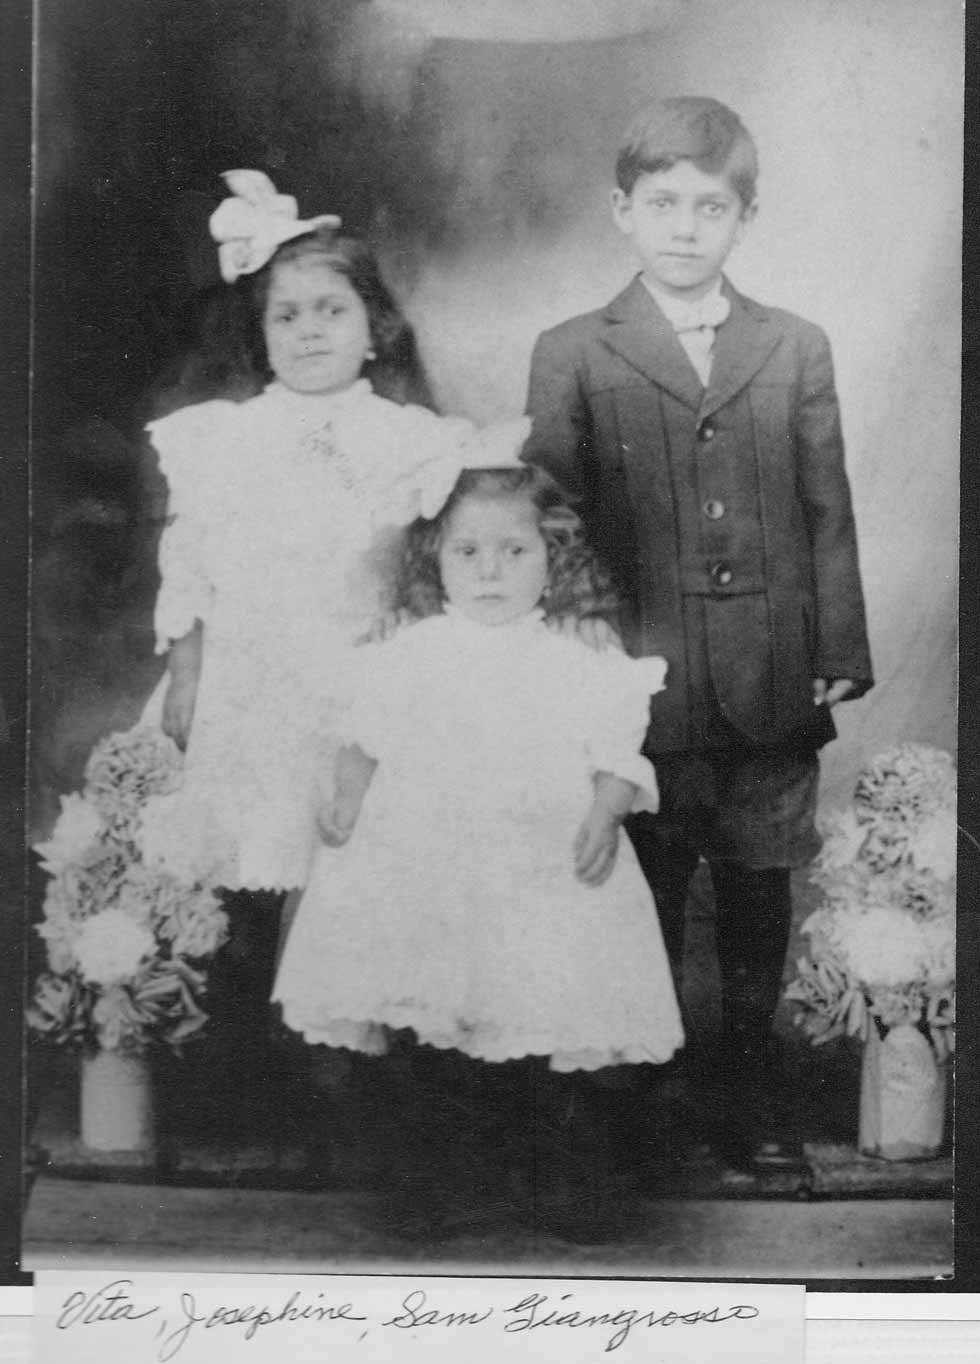 Josephine and her siblings as kids.